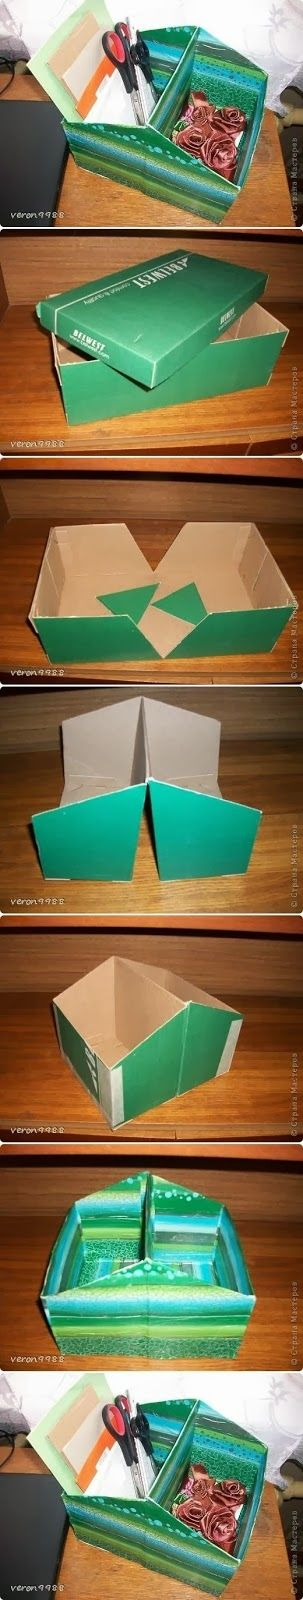 DIY Craft Storage Box Pictures, Photos, and Images for Facebook, Tumblr, Pinterest, and Twitter: